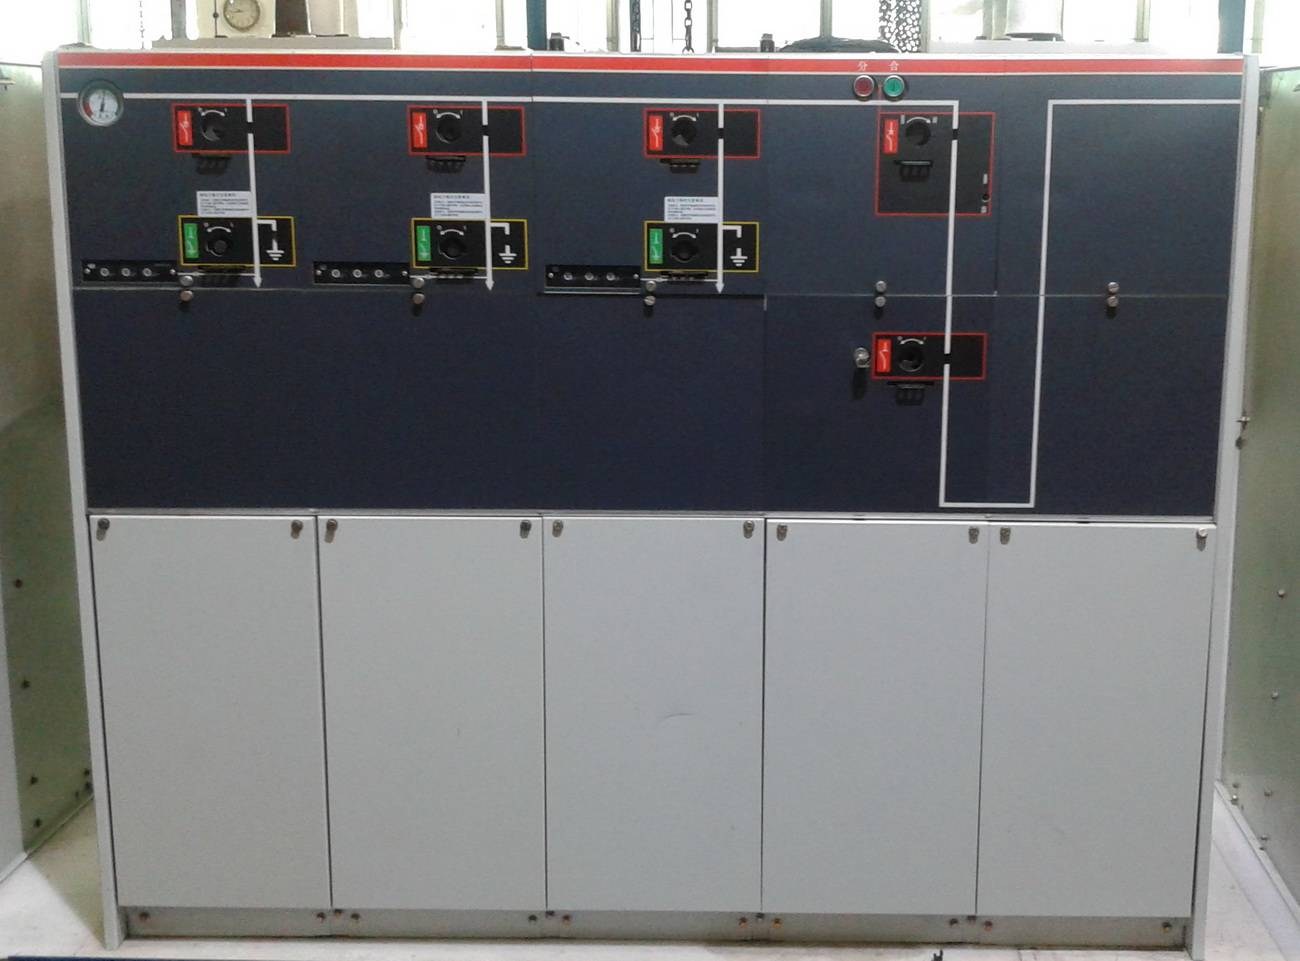 24kV SF6 gas-insulated metal-enclosed Ring Main Unit